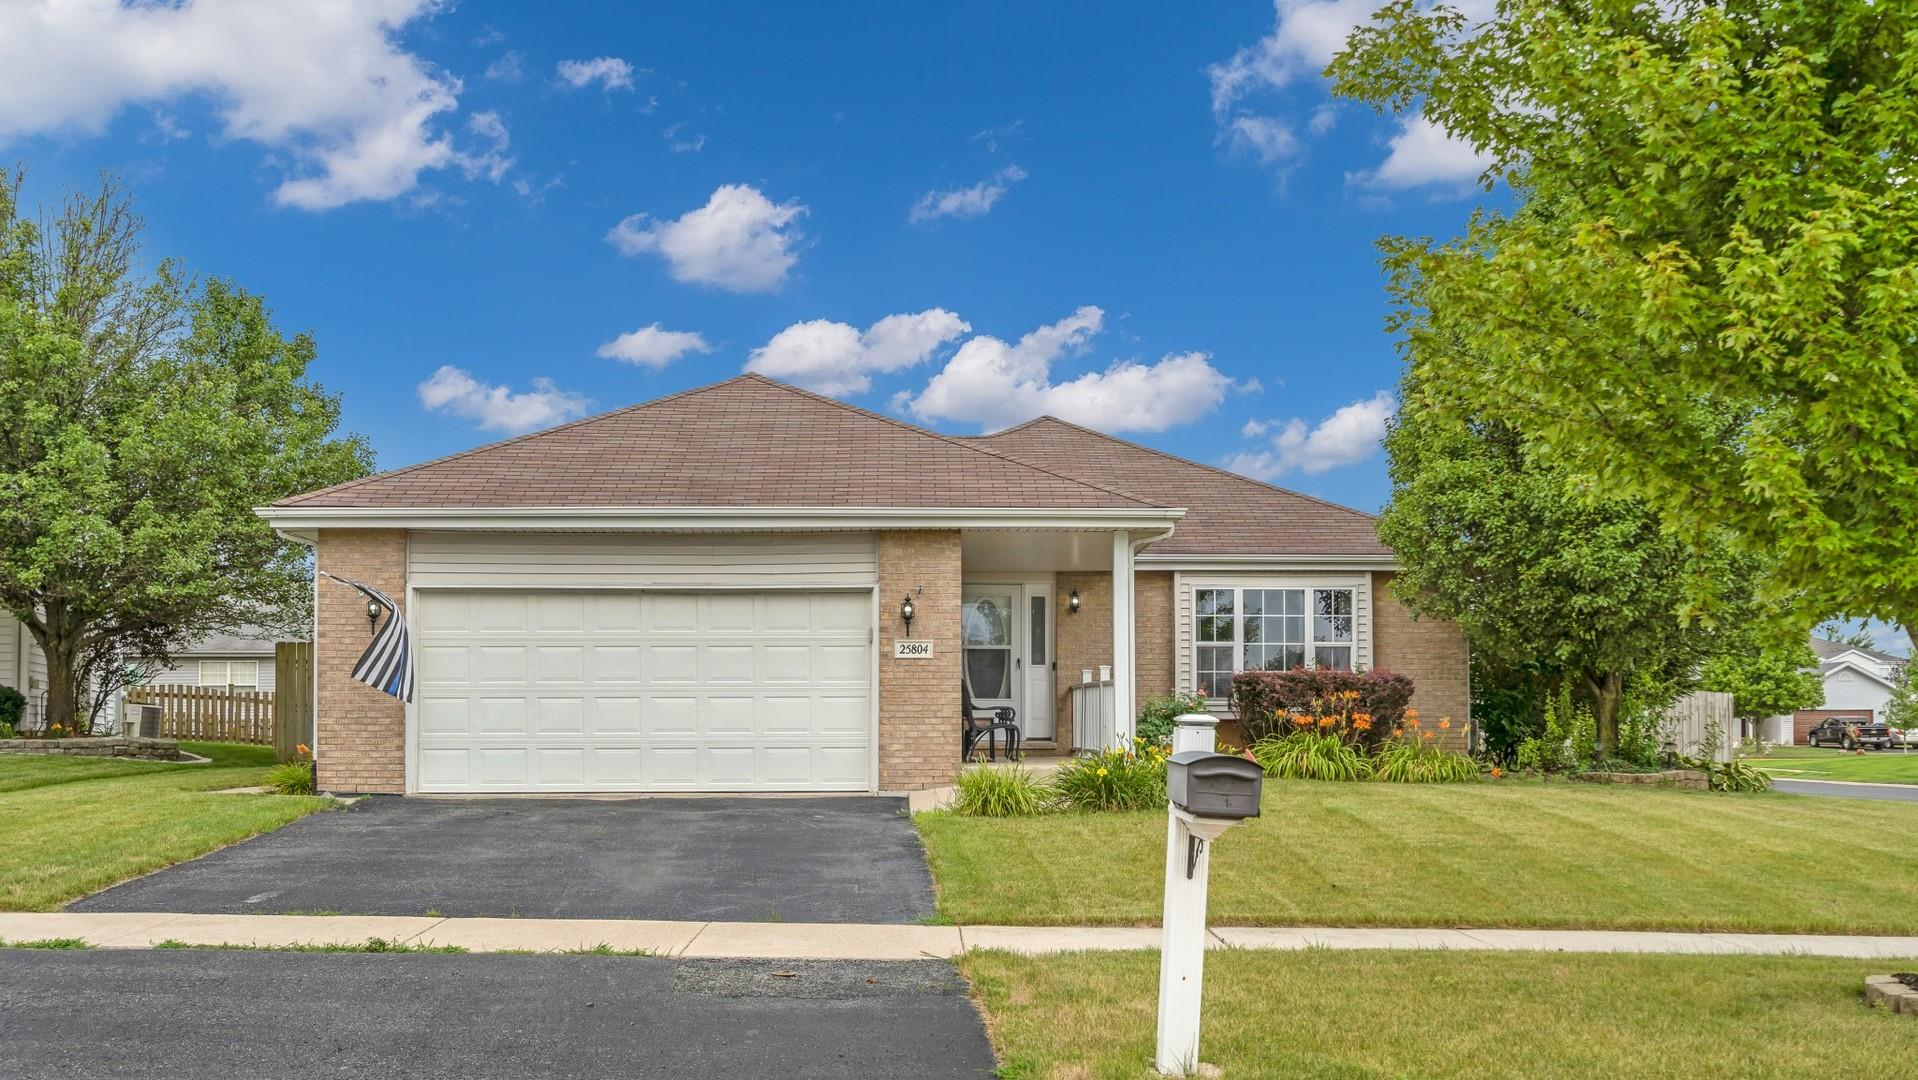 25804 S Hoover Court, Monee, IL 60449 - #: 10790883